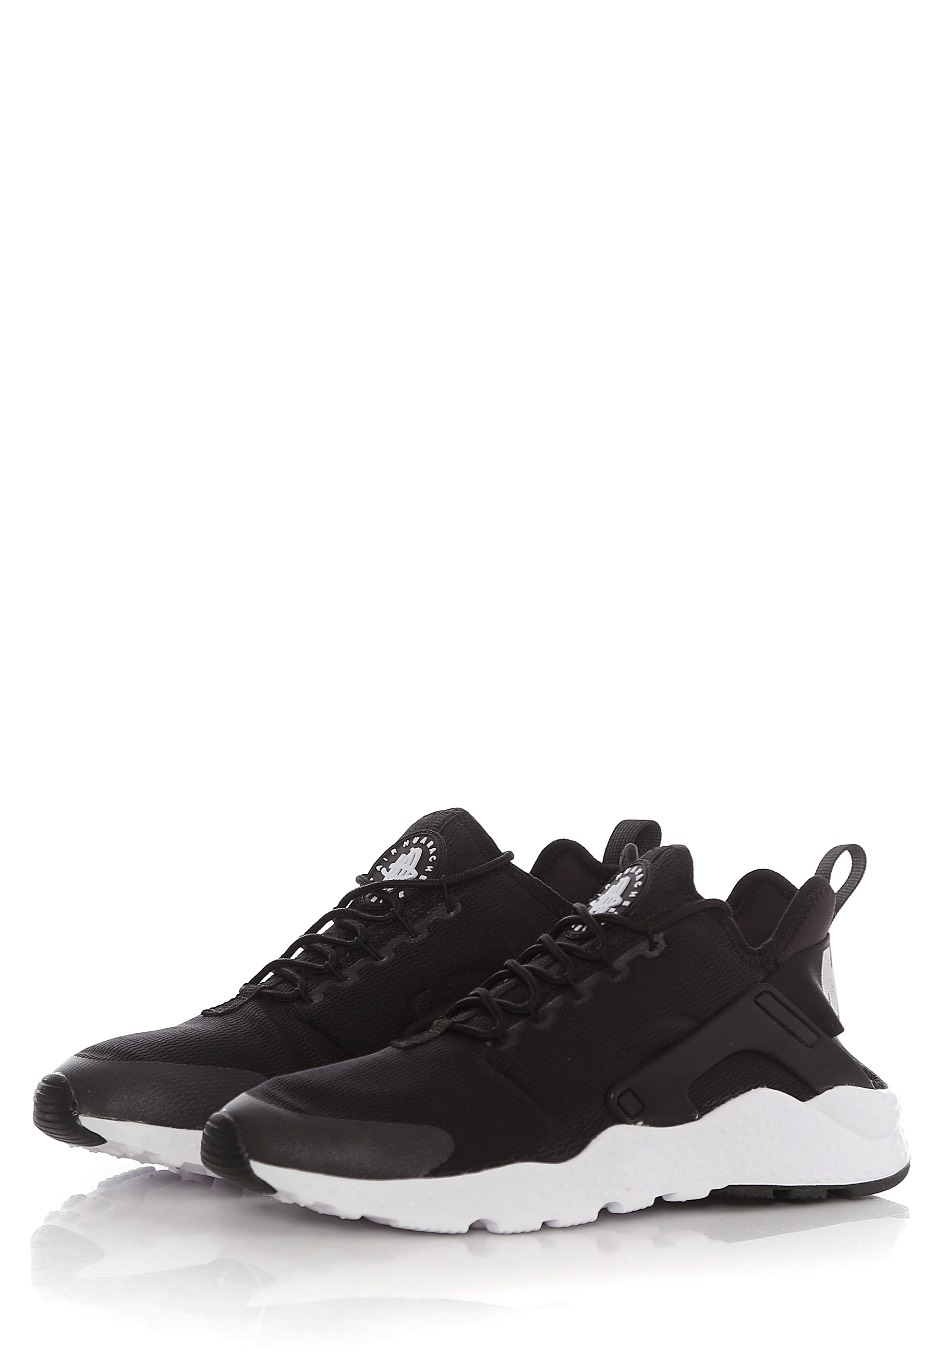 Nike Air Huarache Run Ultra Noir/Blanc Girl Chaussures  Impericon